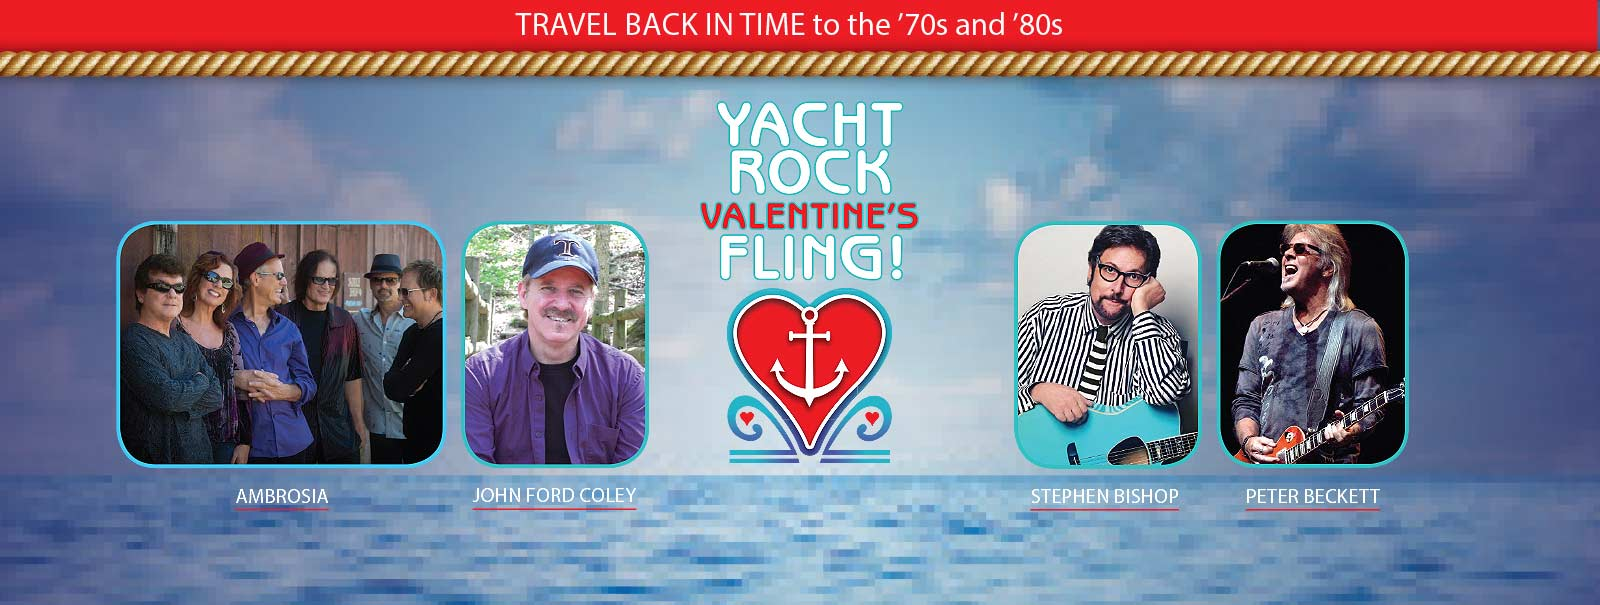 More Info - Yacht Rock Valentines Fling!